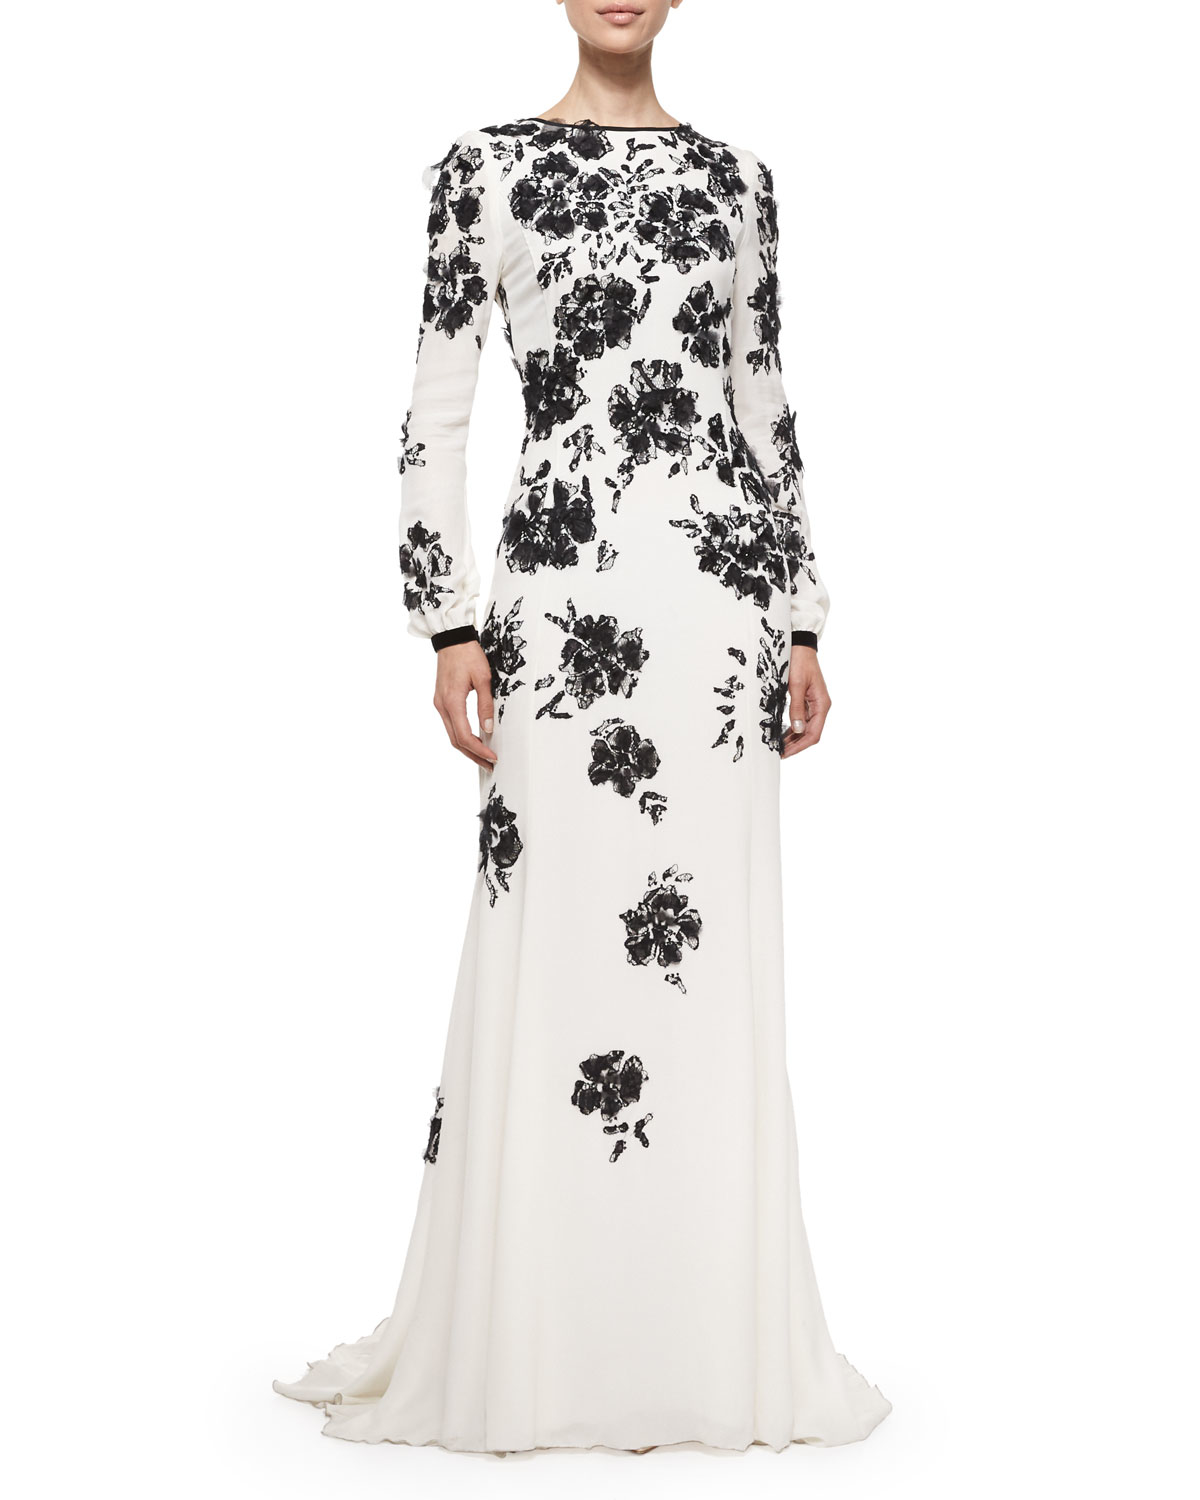 Lyst - Oscar De La Renta Long-Sleeve Floral-Embellished Gown in Black